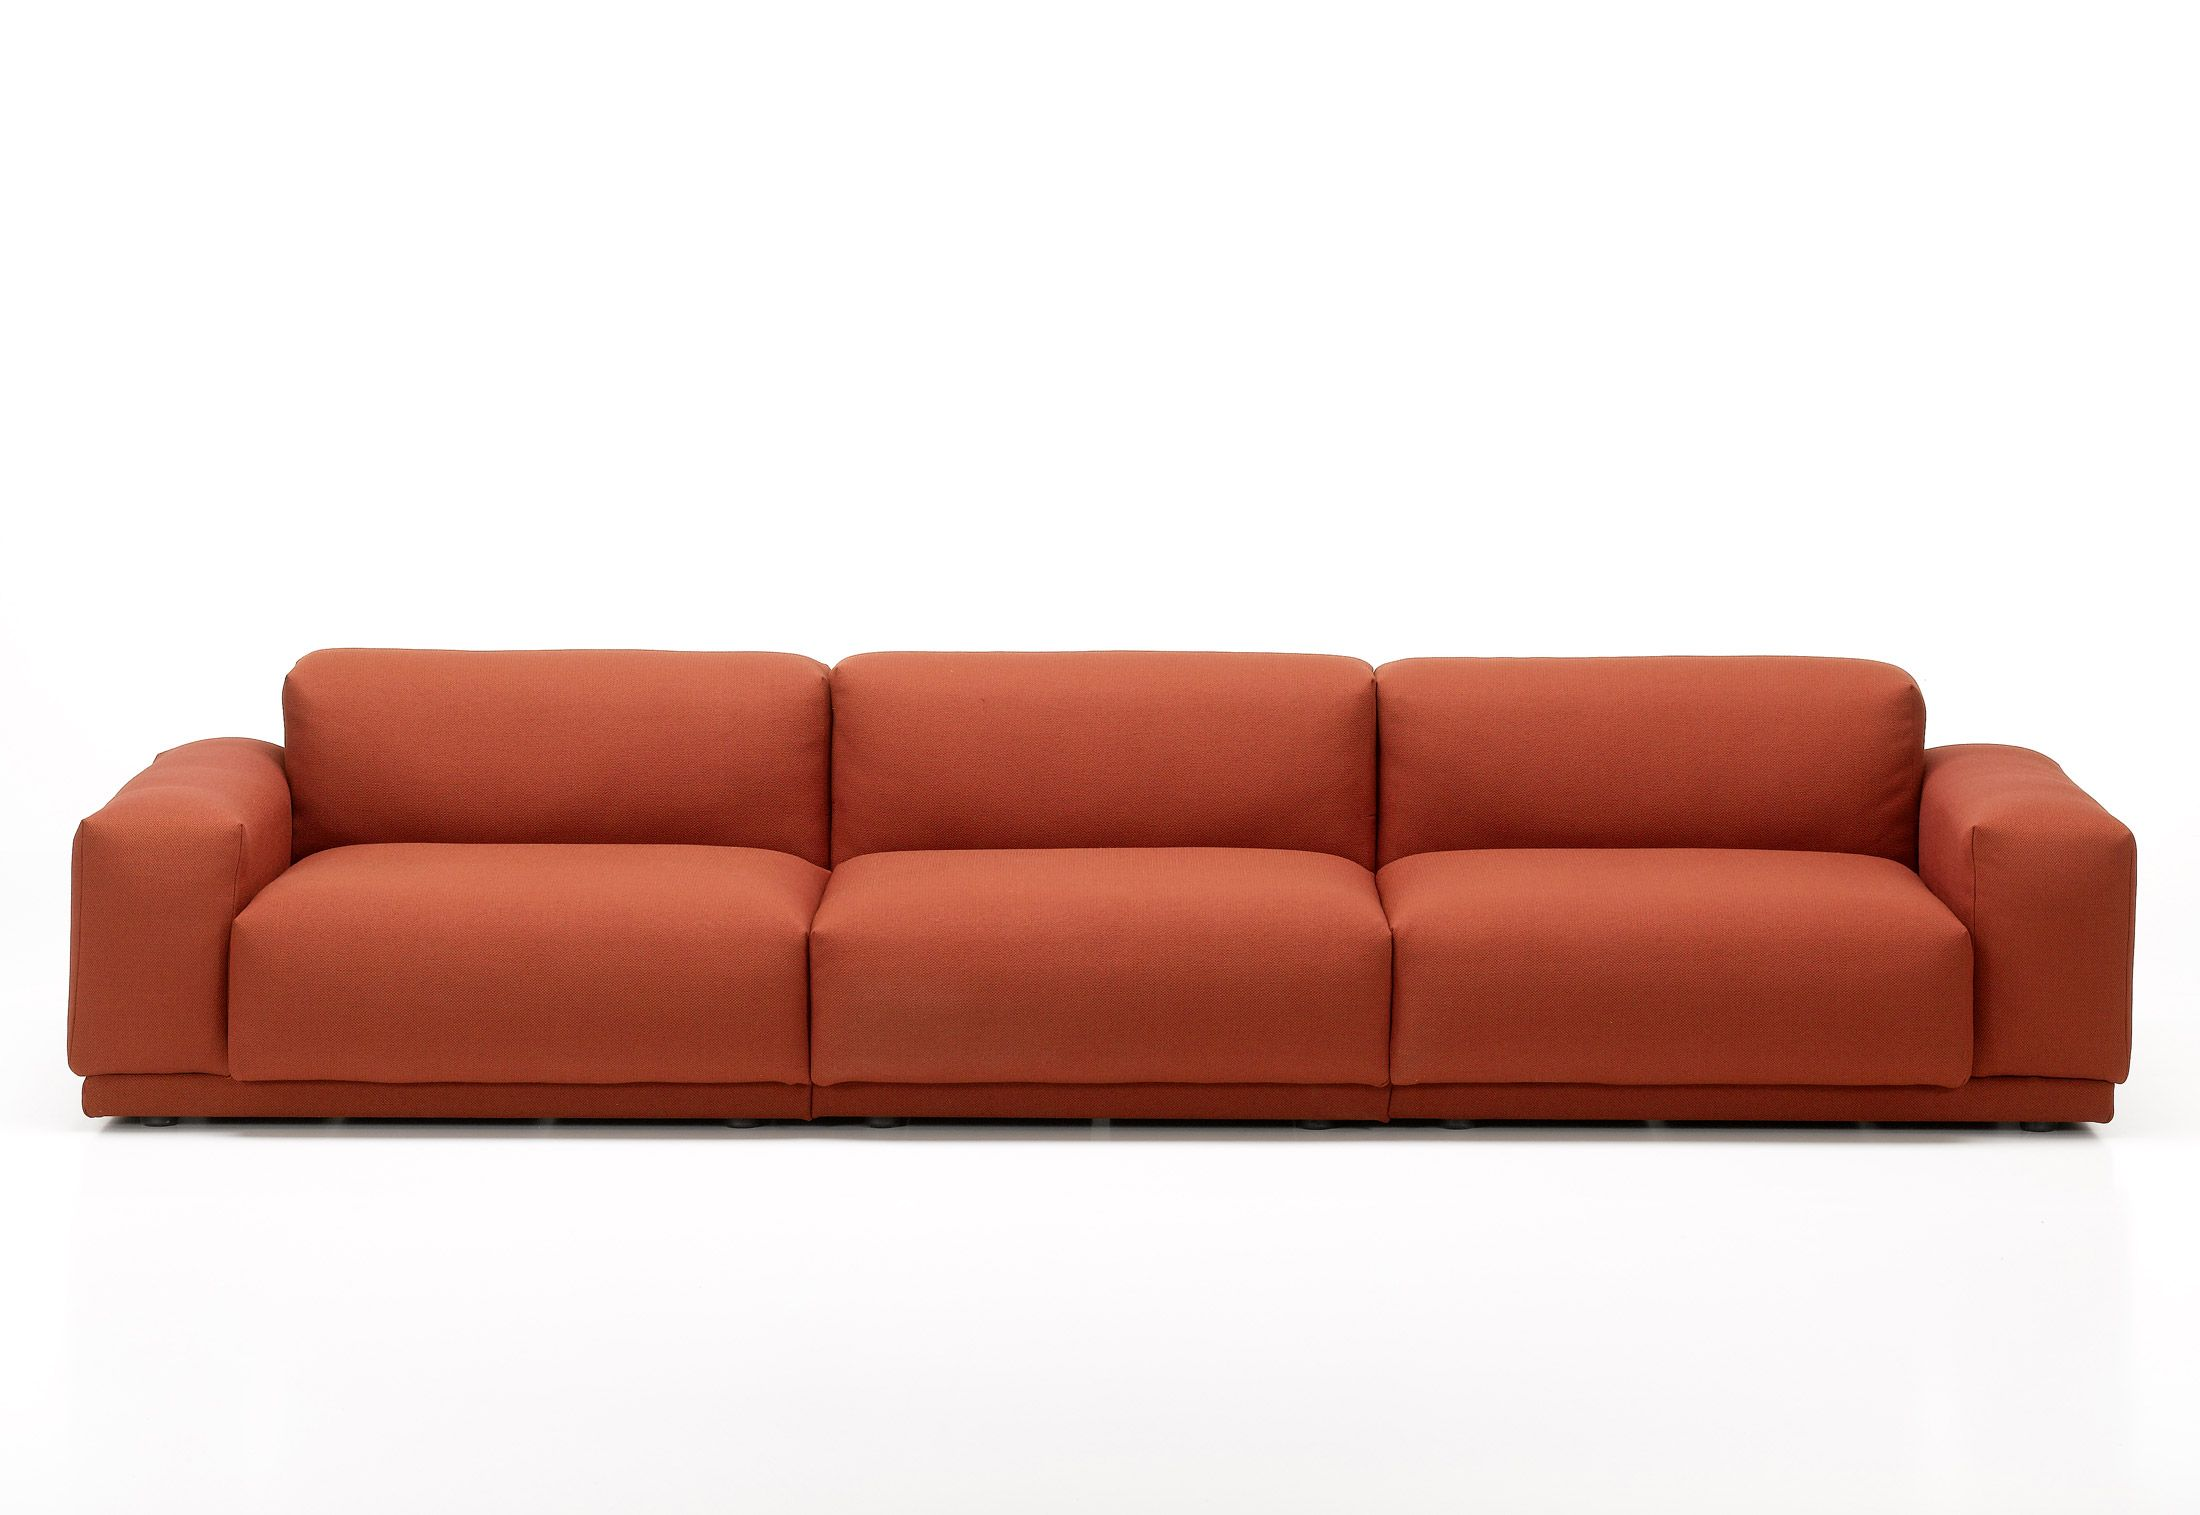 Place Carrot Red Orange Sofa By Jasper Morrison For Vitra